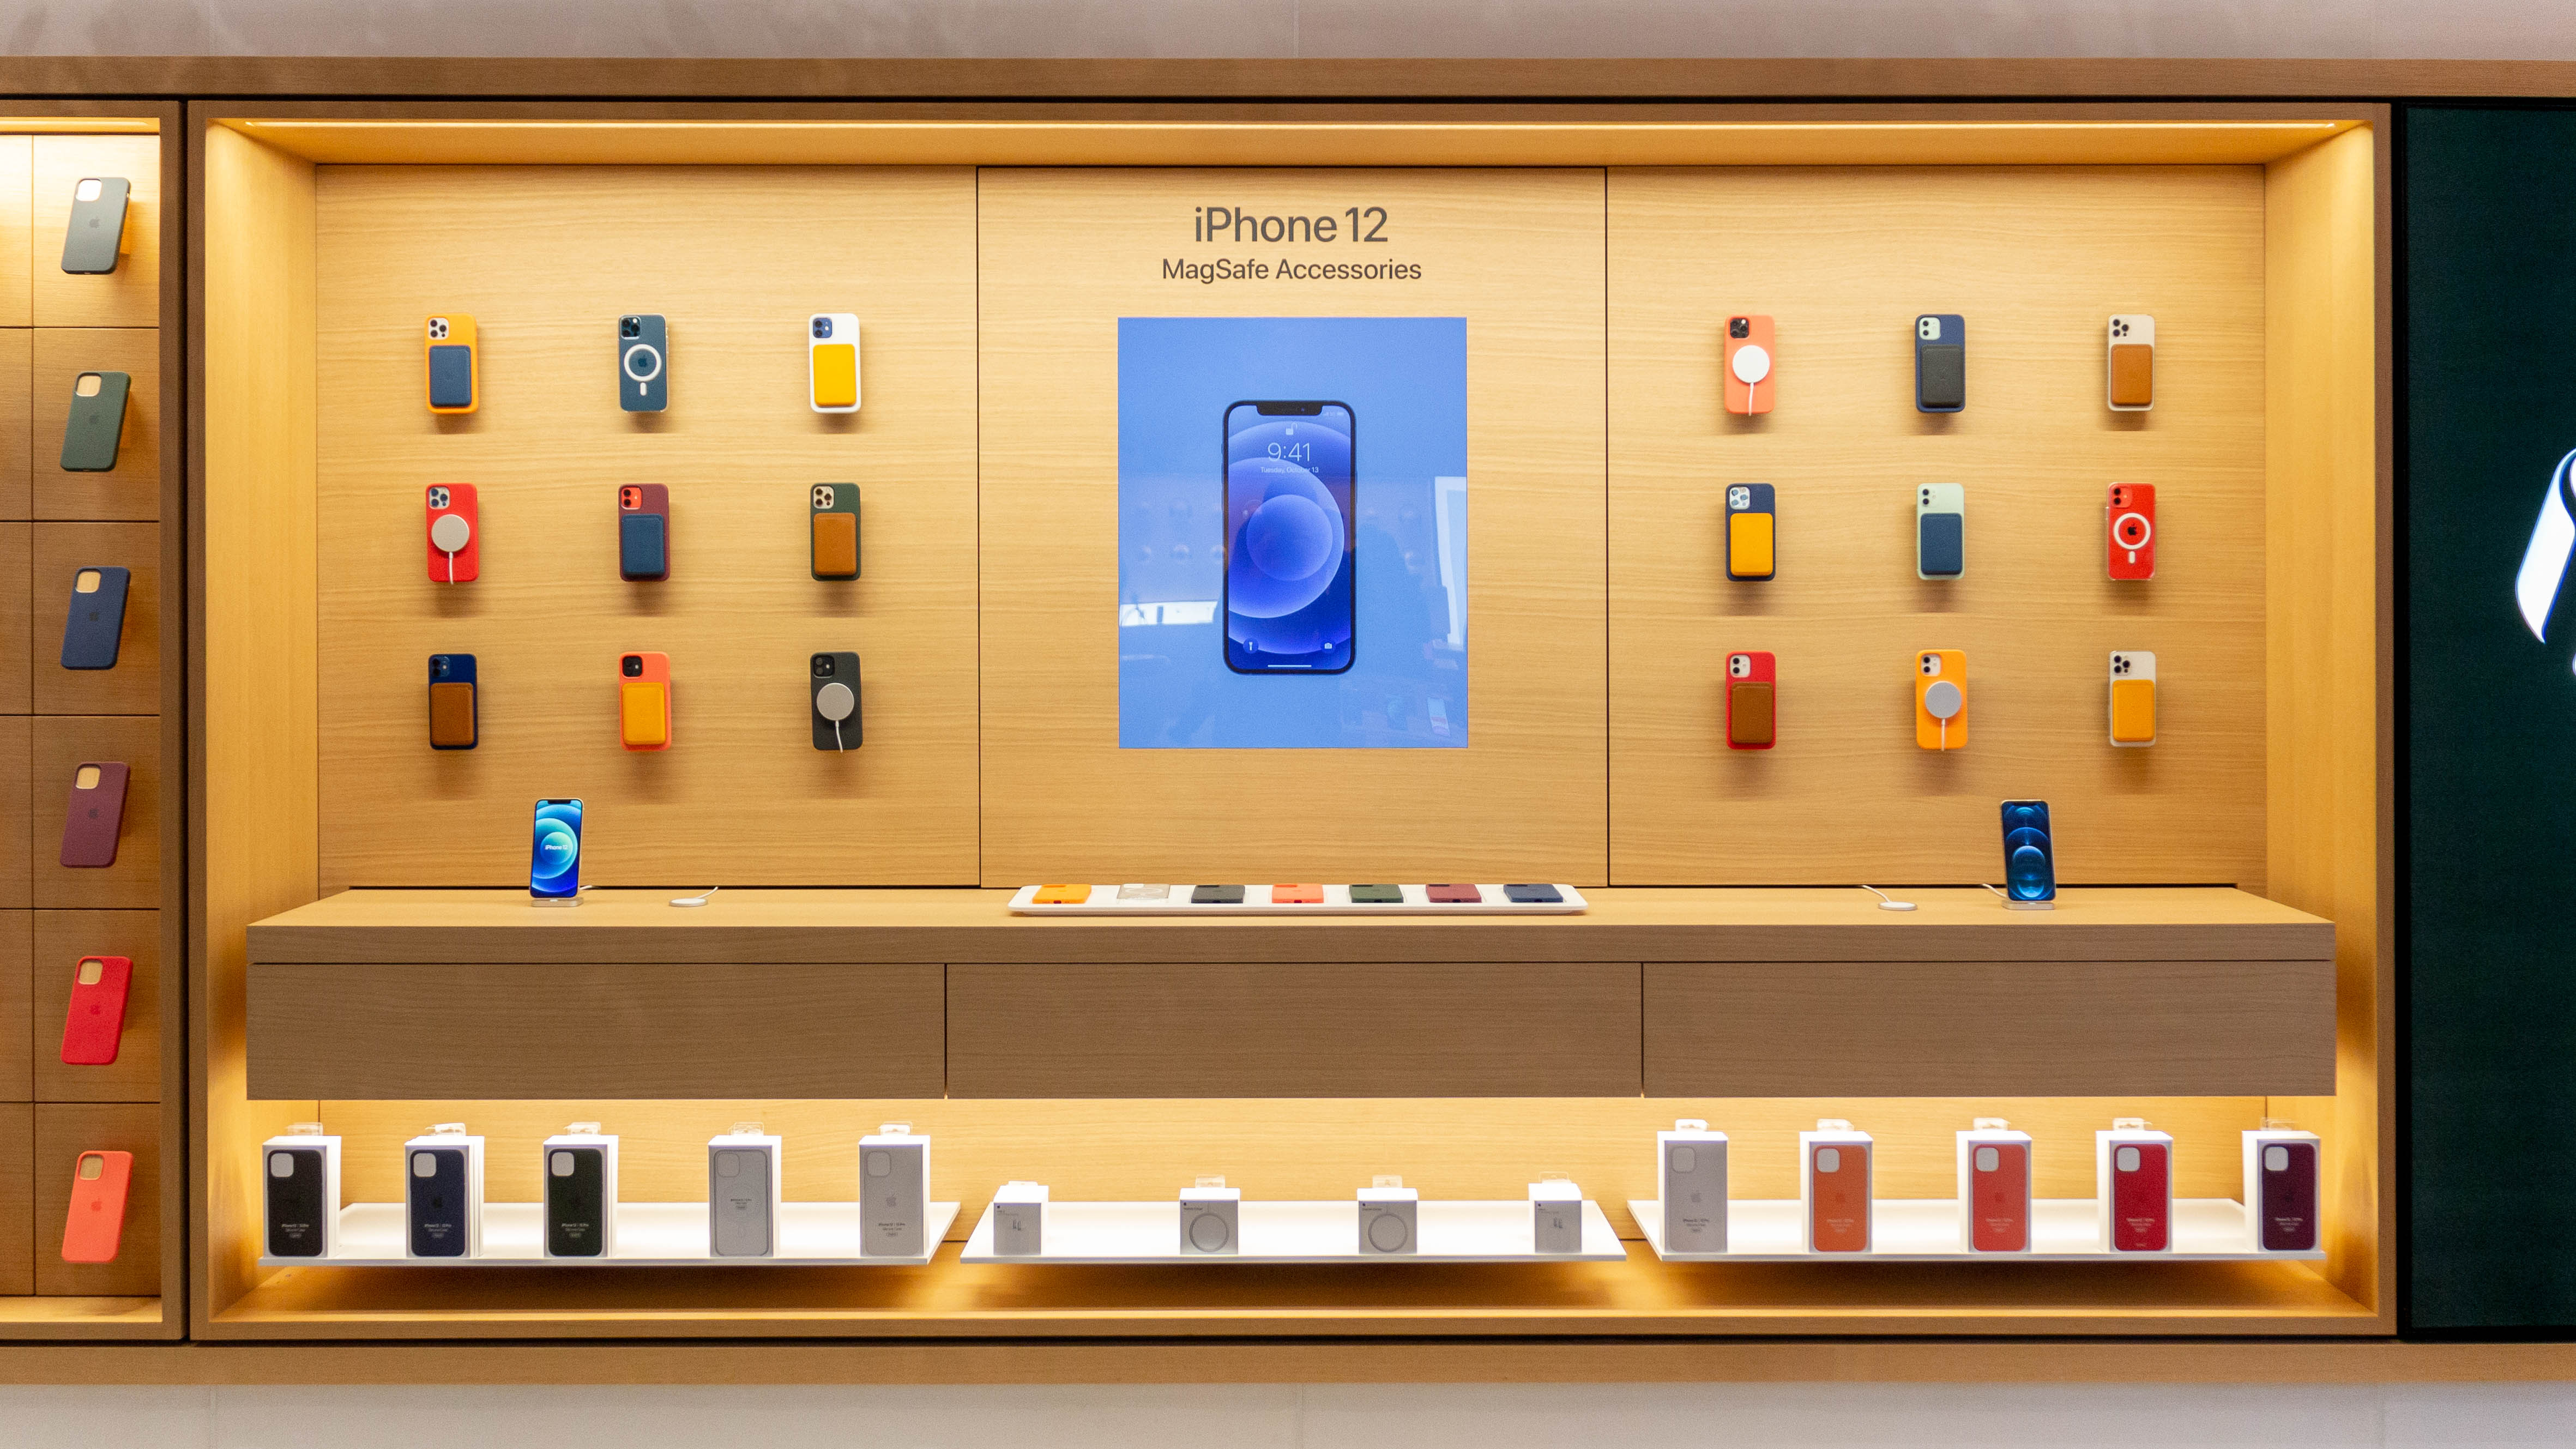 photo of Apple Stores highlight iPhone 12 MagSafe accessories with interactive displays image